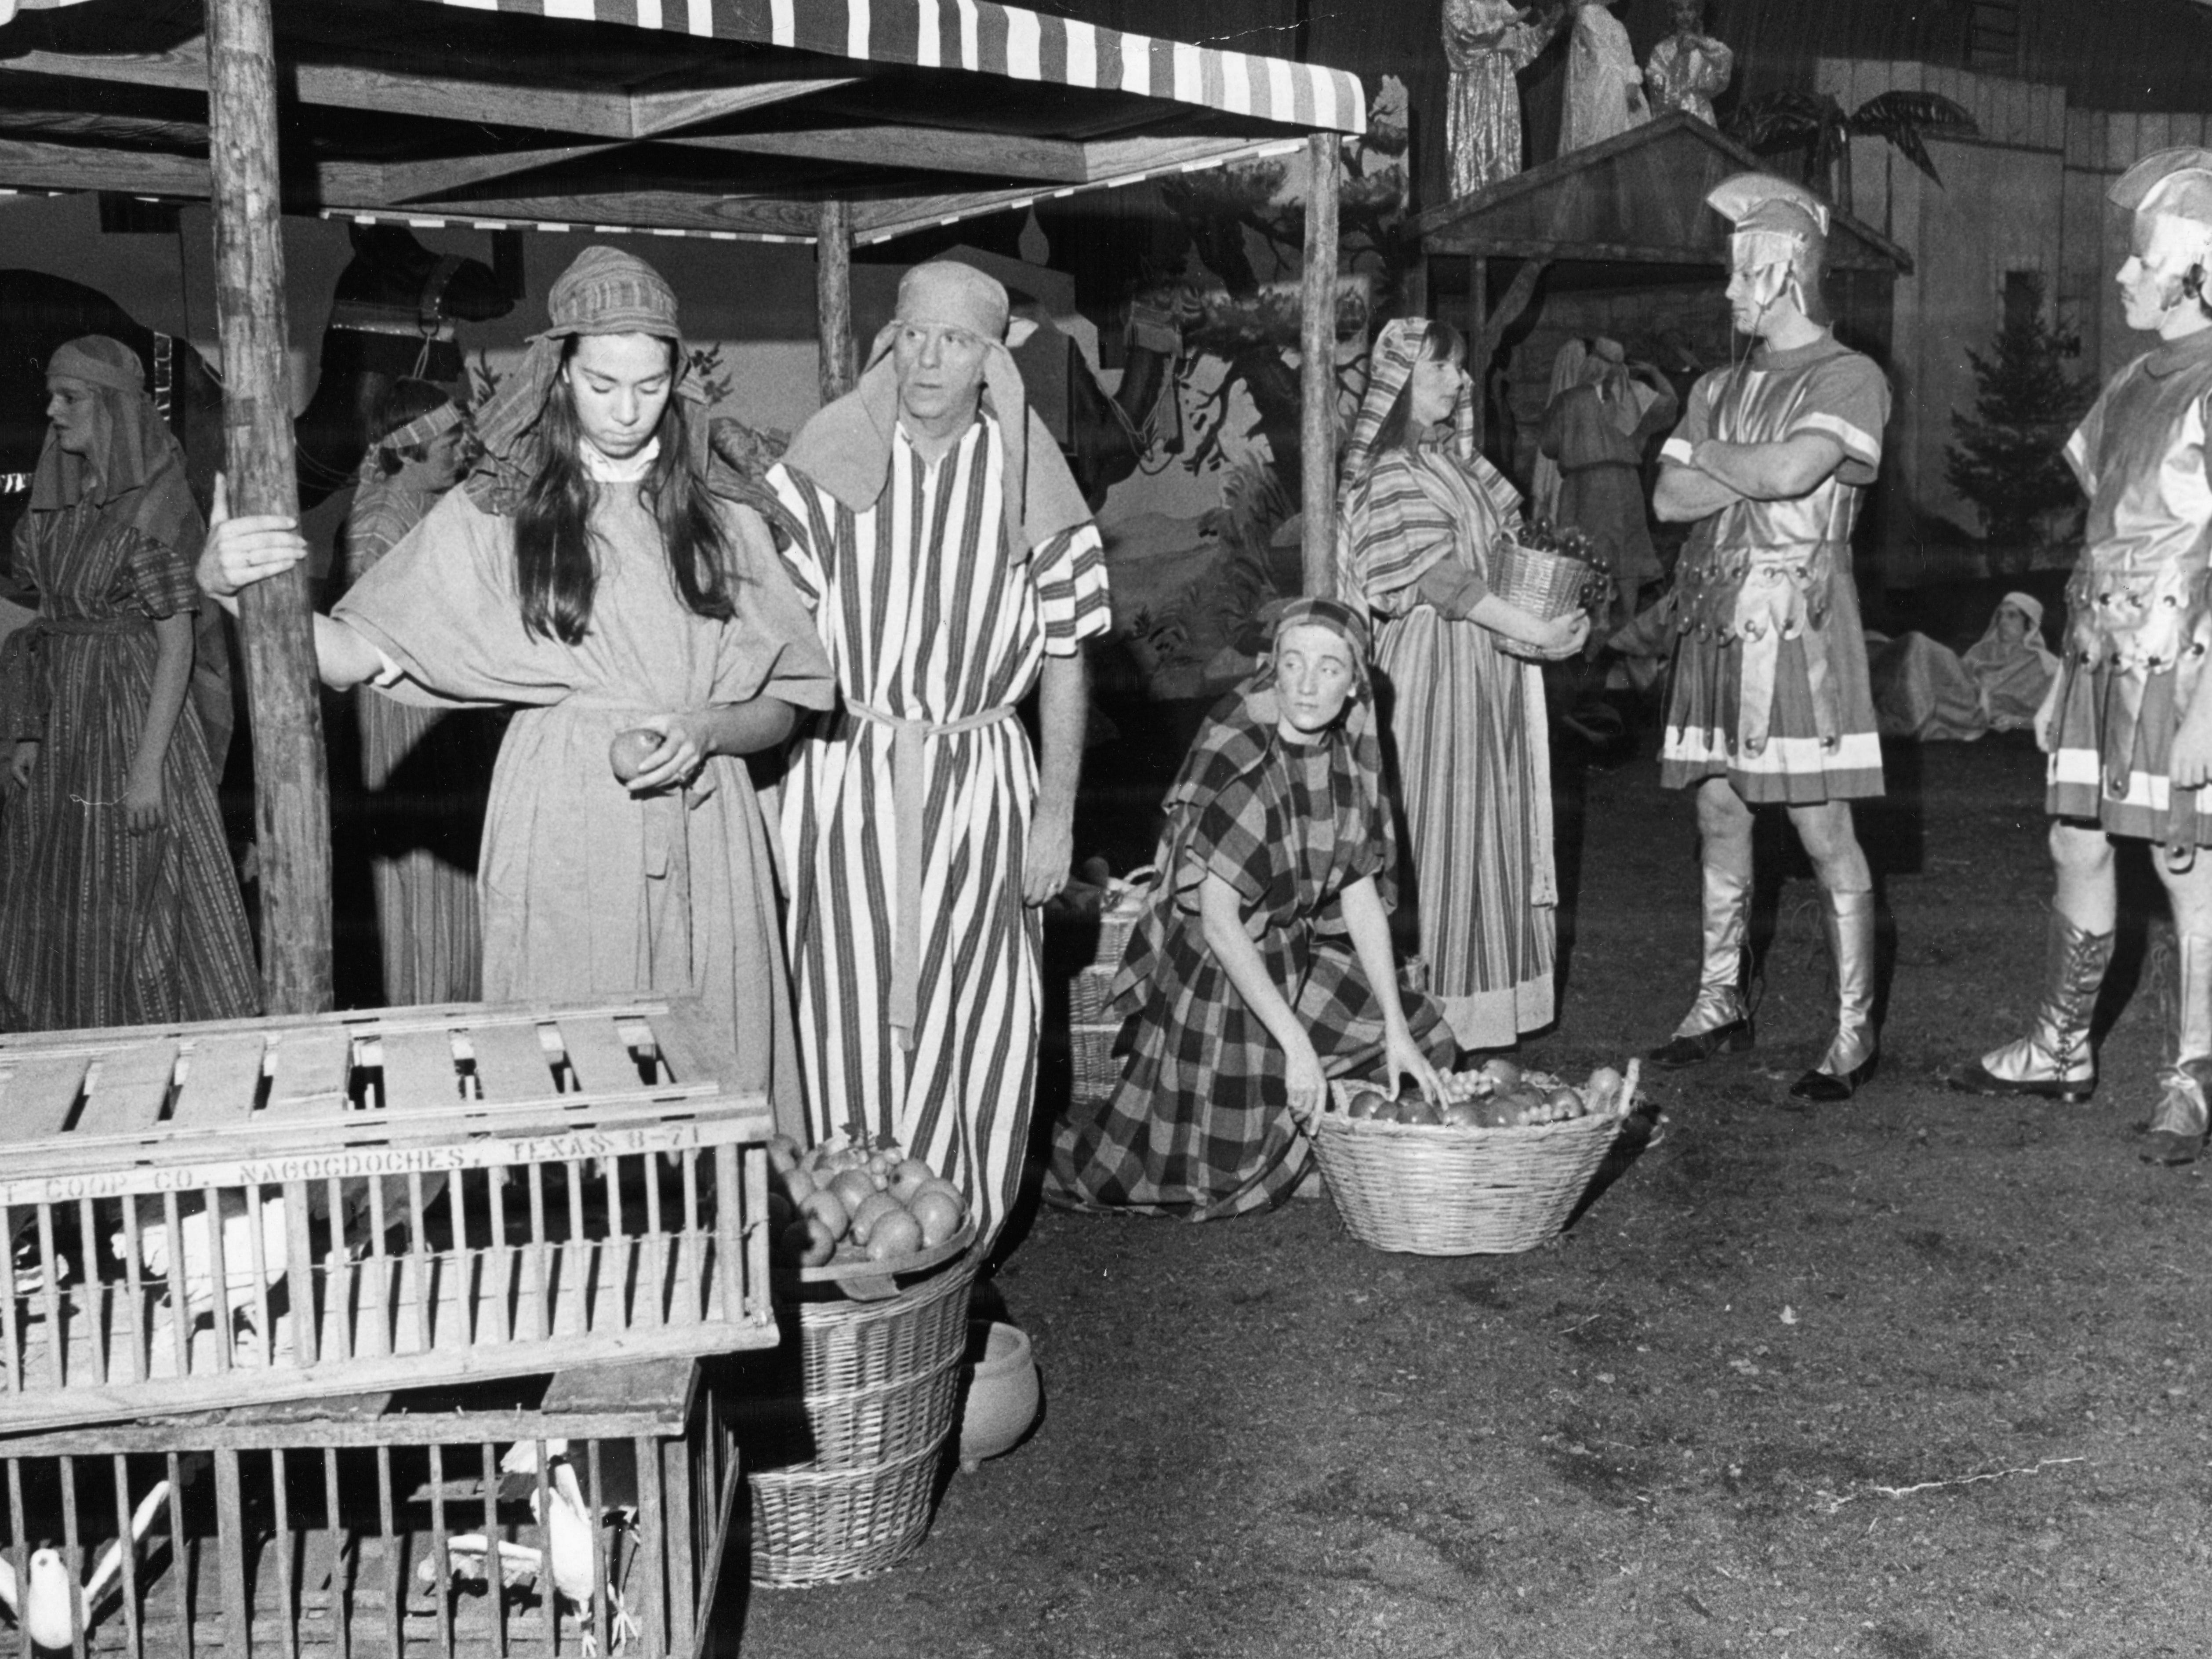 Rehearsing for the Nativity Pageant are Sharon Regas, Latain McGee, Jan Davis, Susan Stone, Jon Burnett, and Steve Reese on Dec. 14, 1969, at the Civic Coliseum.